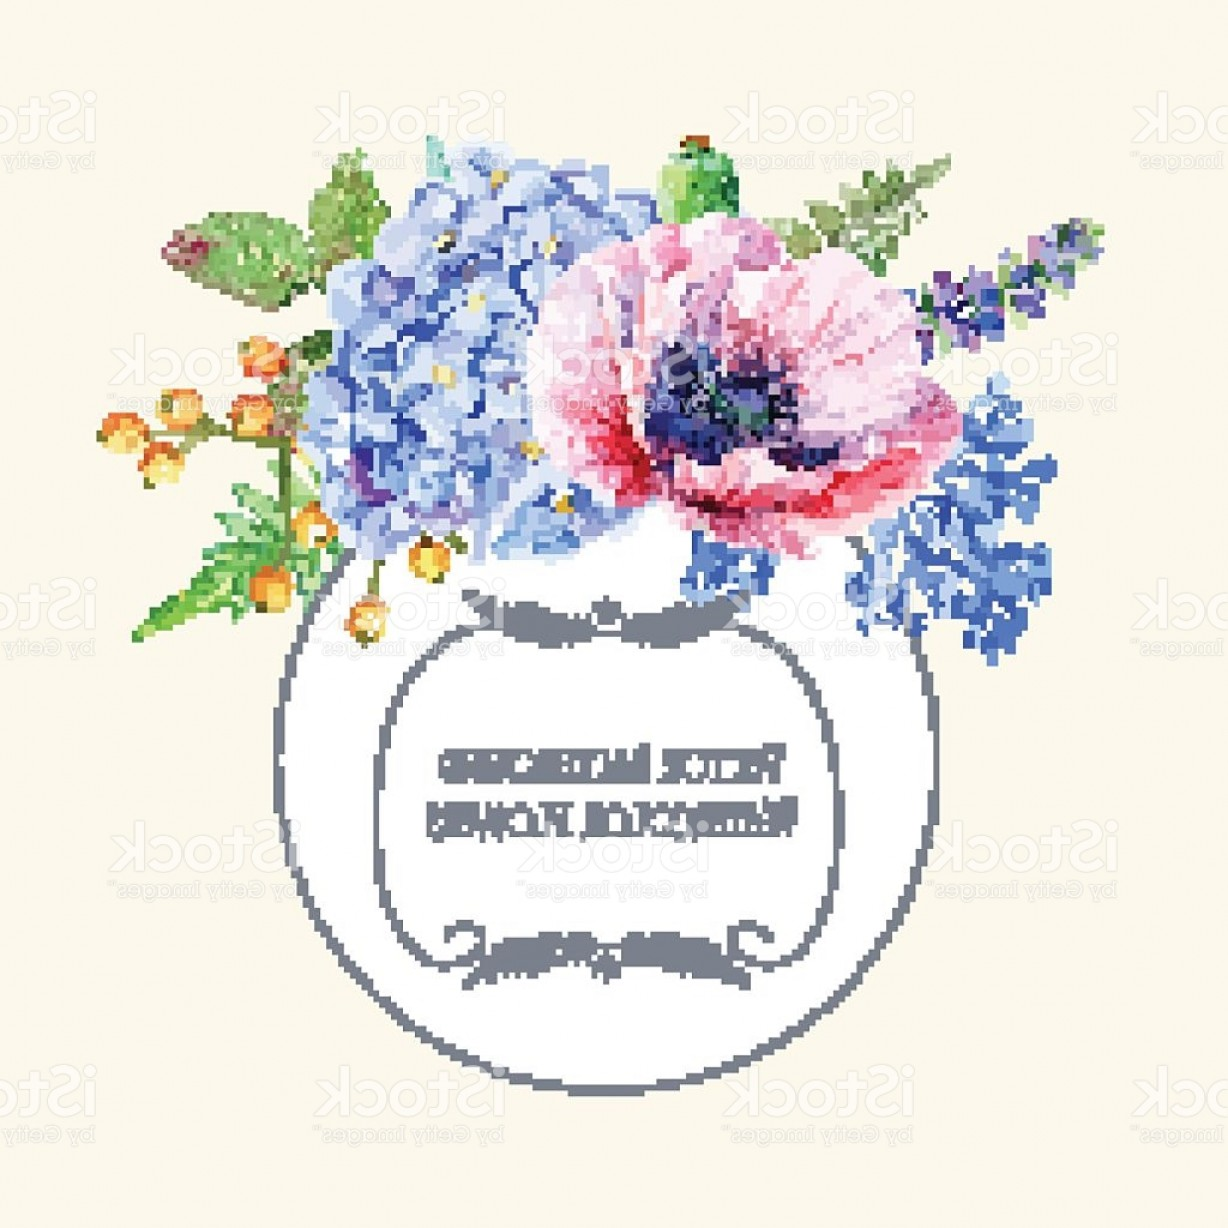 Hydrangea Vector Graphics: Round Frame Of Watercolor Poppies And Hydrangea Gm